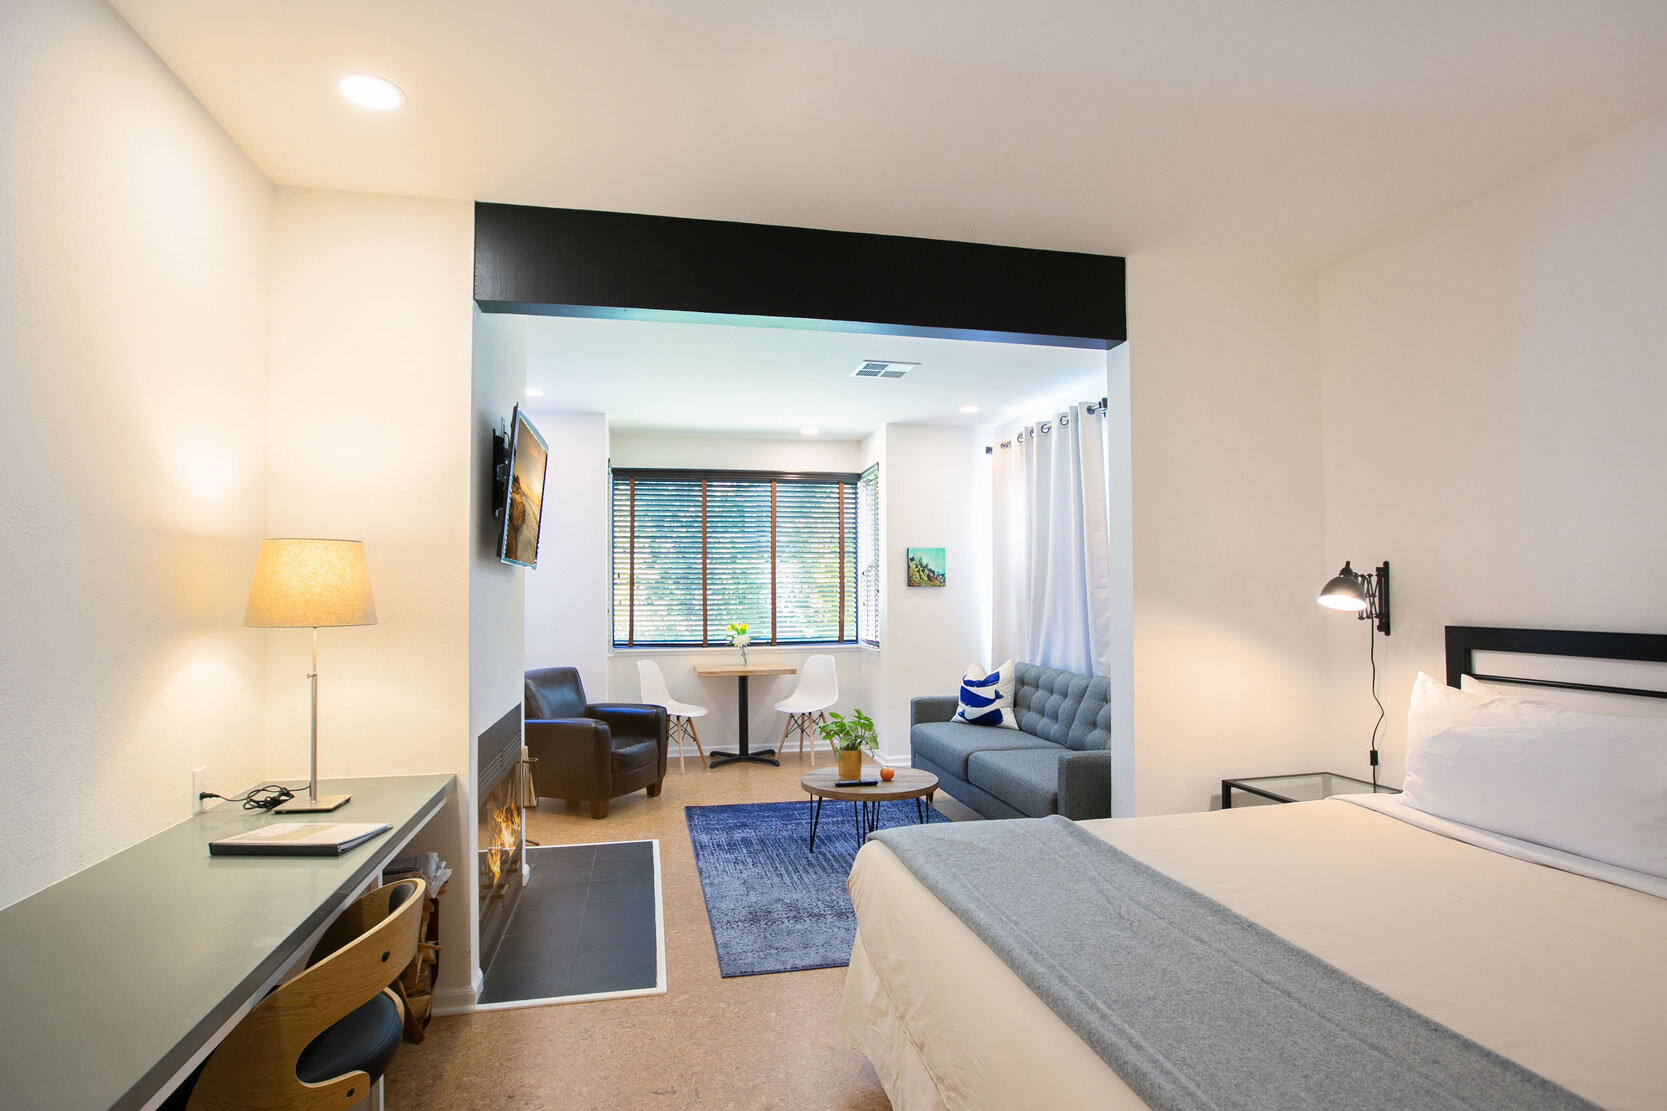 Room 103 in the Lodge with a comfy bed, wood-burning fireplace, sitting area, desk space, and cork floors